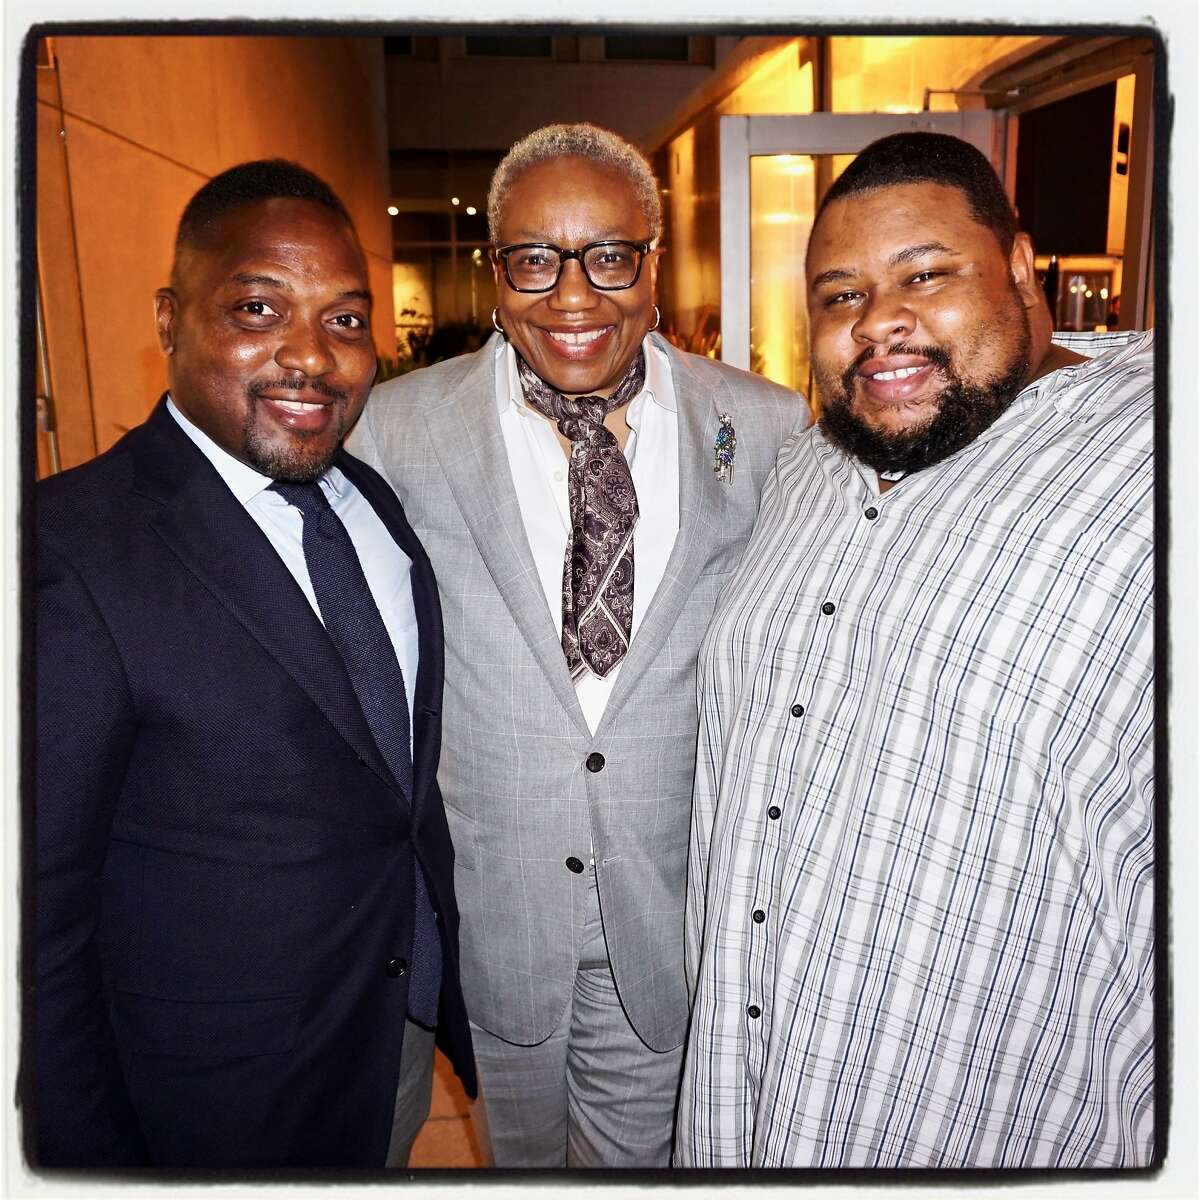 Food activist-author Bryant Terry (left) with MoAD Director Linda Harrison and chef-author Michael Twitty at the St. Regis Hotel. Aug. 29, 2017.